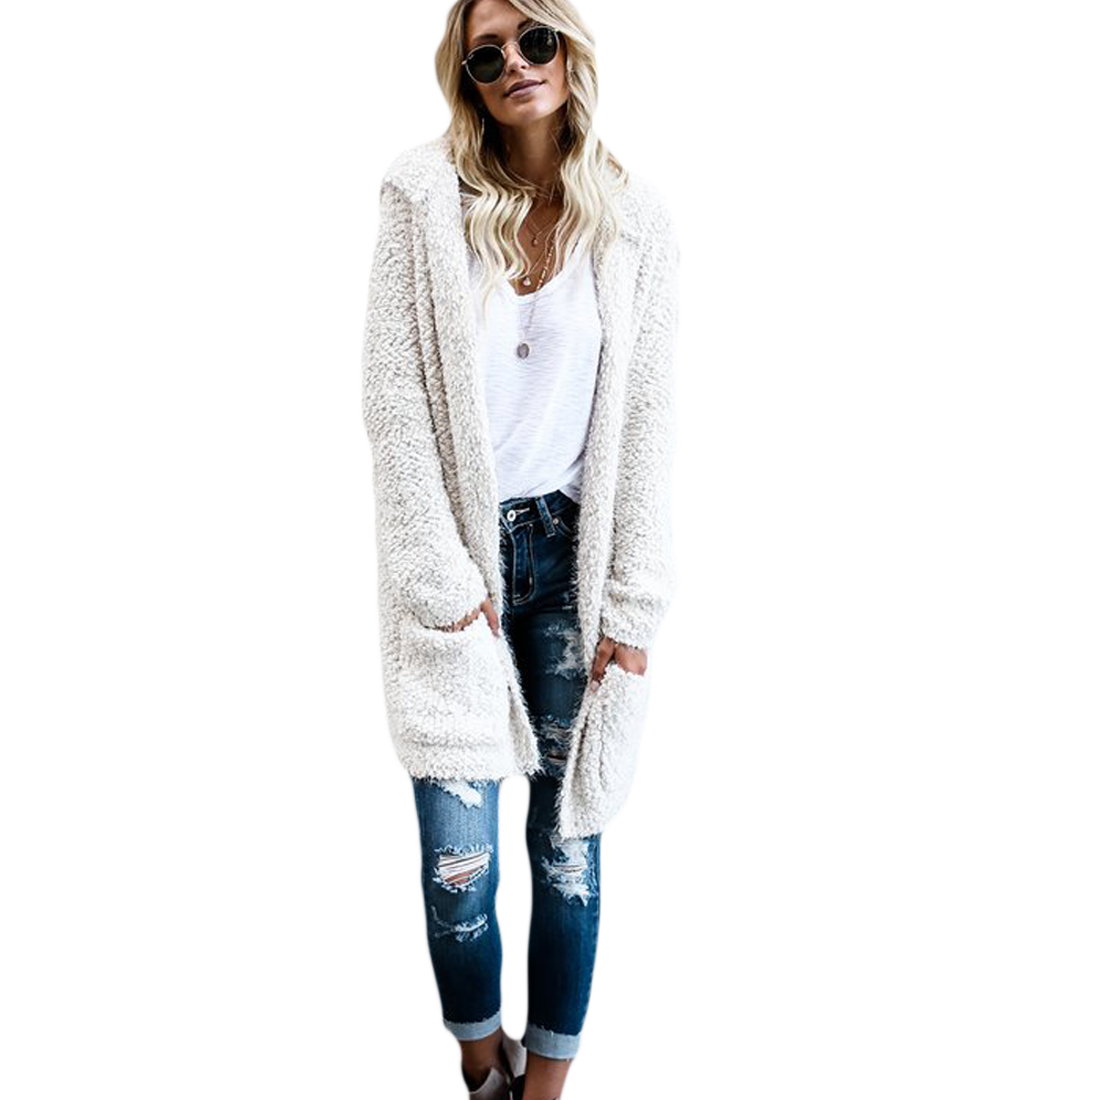 YJSFG HOUSE Hot New Women Long Cardigan Sweater Long Solid Sweater Sleeve Knitted Outwea ...